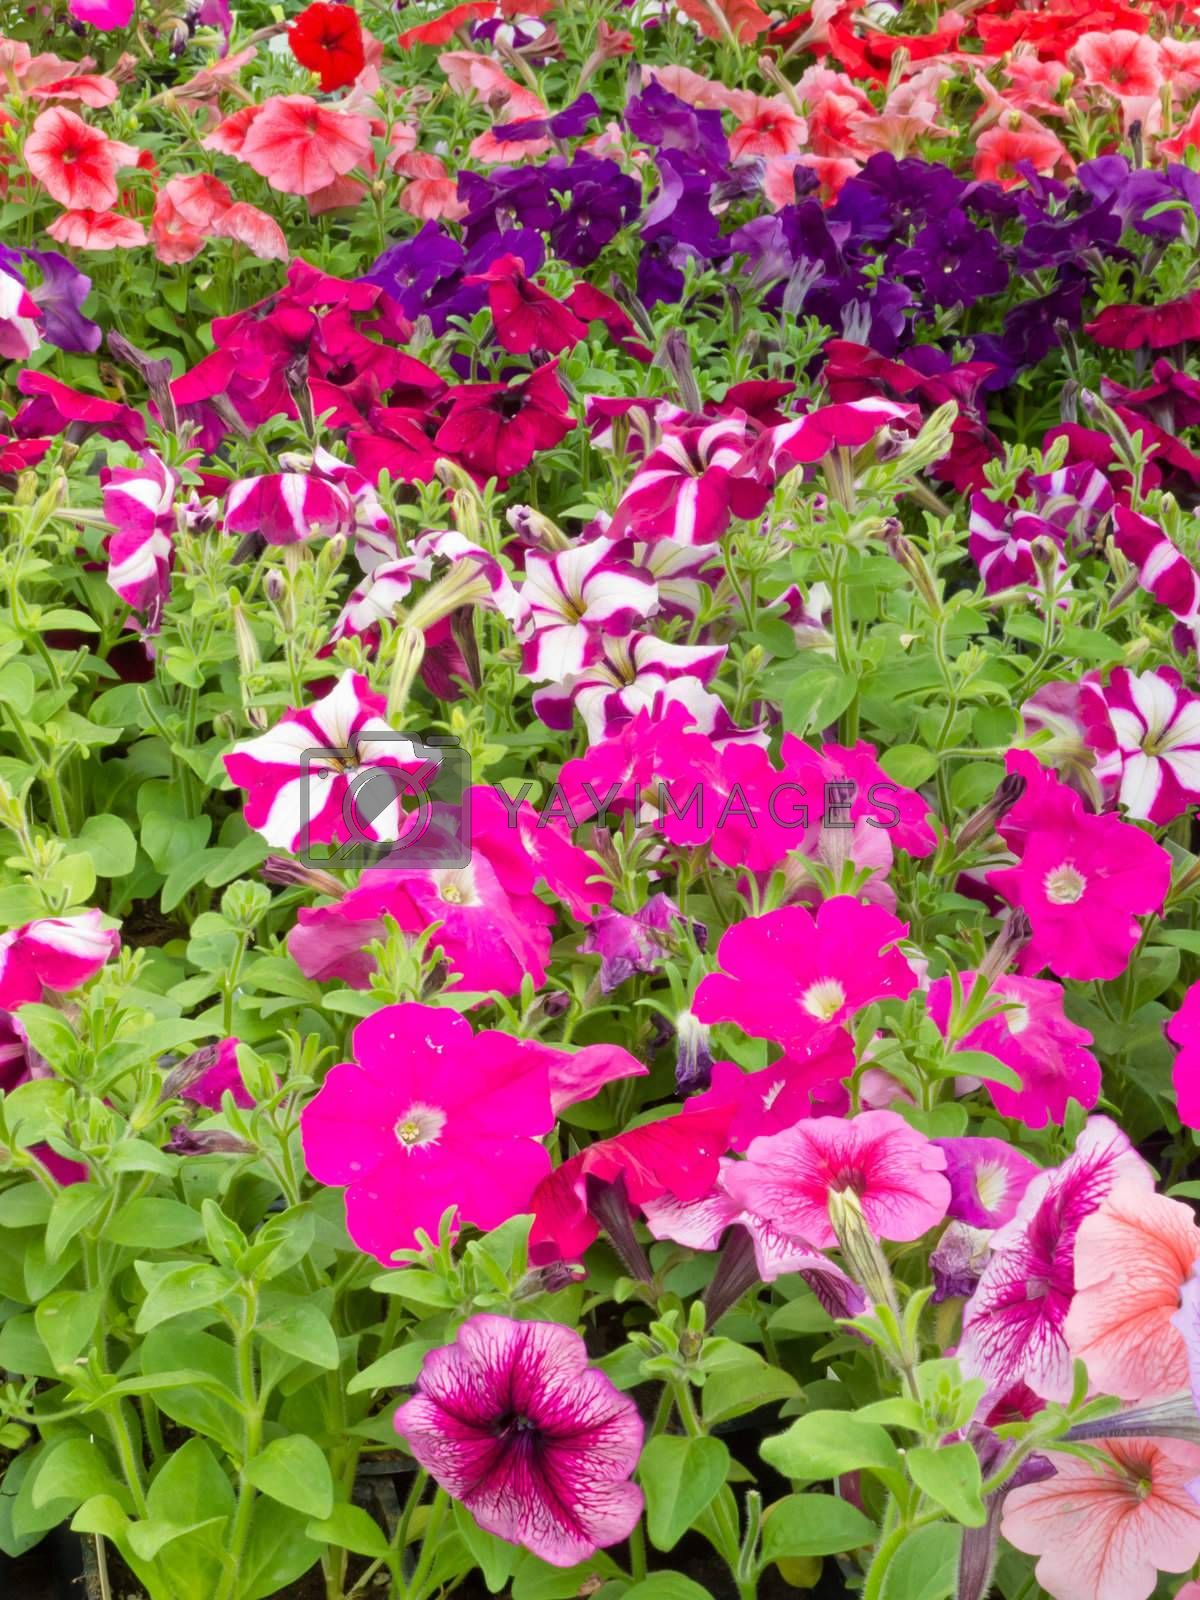 Horticulture: Lots of multi-colored petunias for sale in commercial garden center.